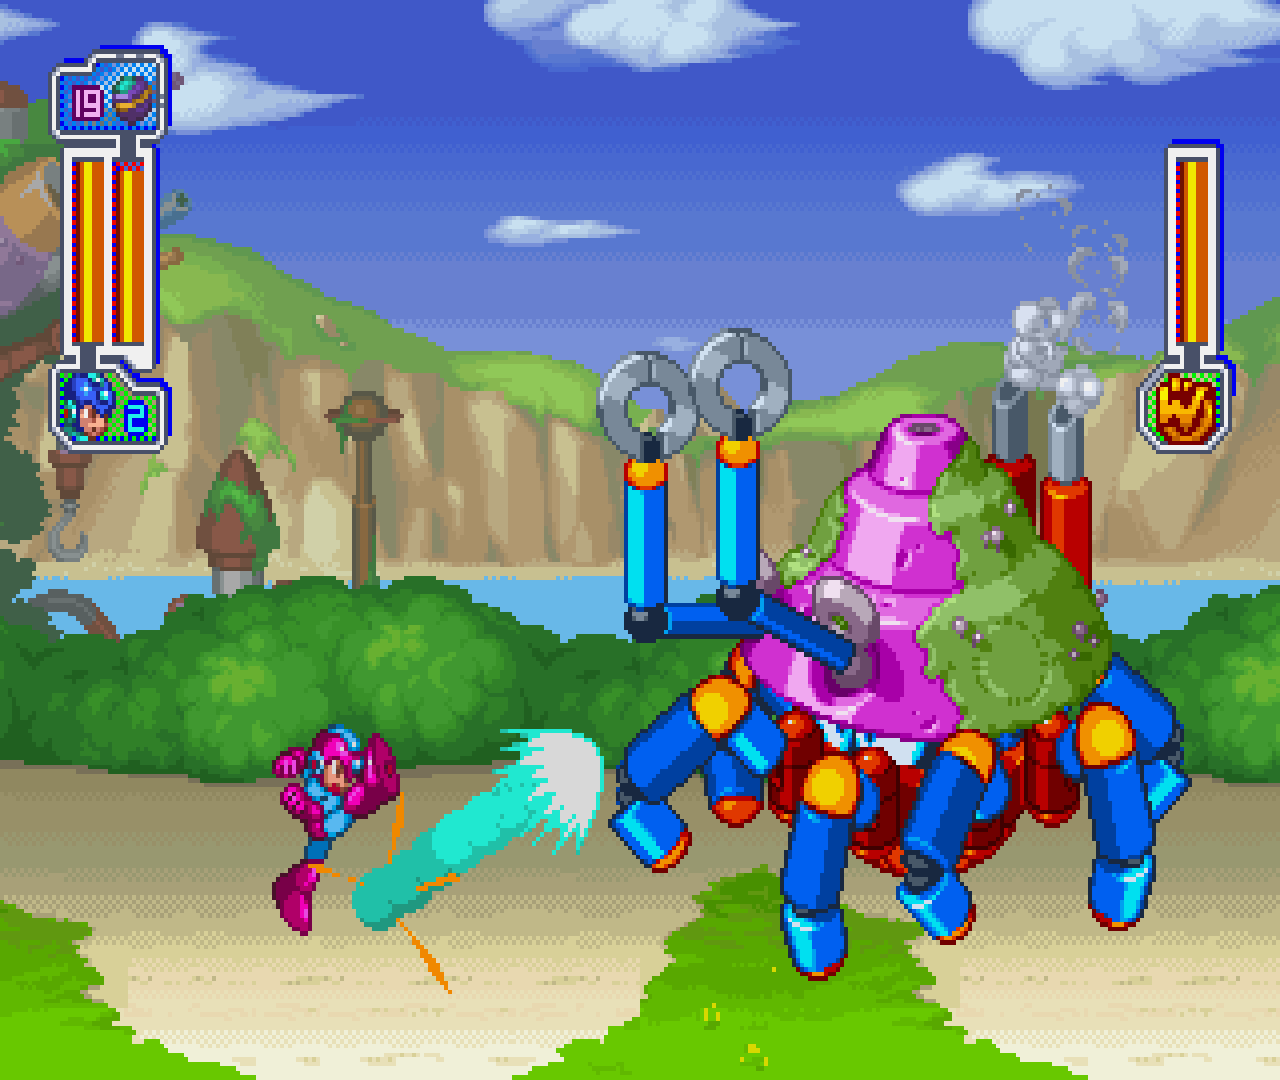 Figure 11 - No Mega Man game is complete without boss battles!